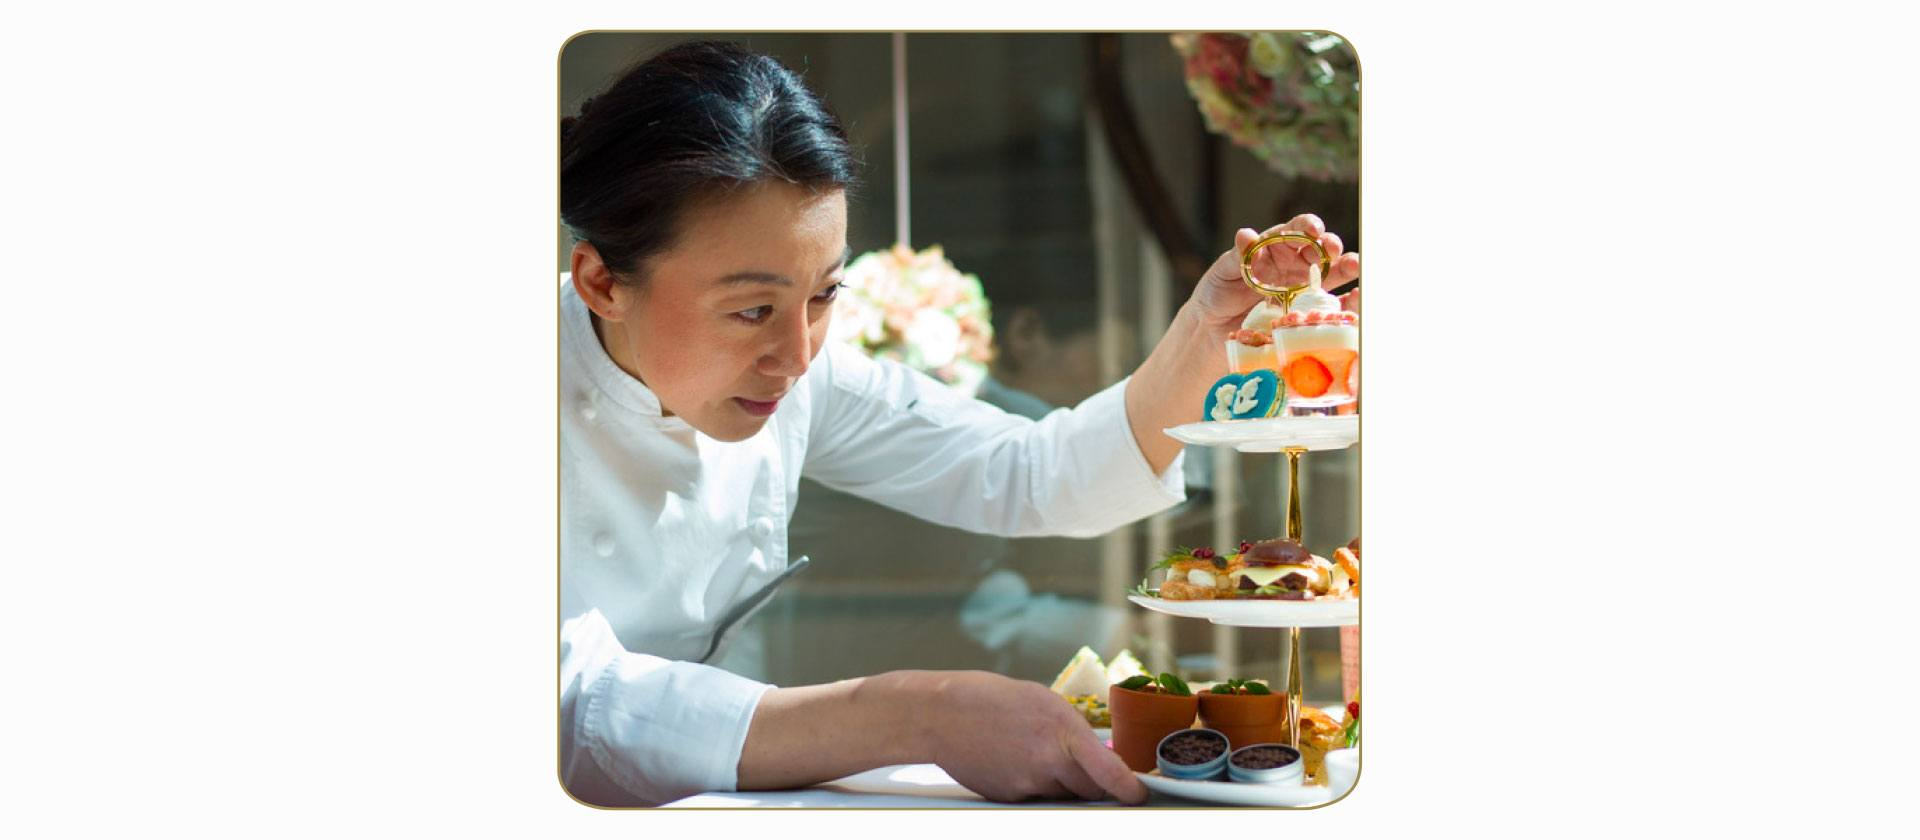 Hideko Kawa (UK) owner and pastry consultant at The Sweet Art Lab.